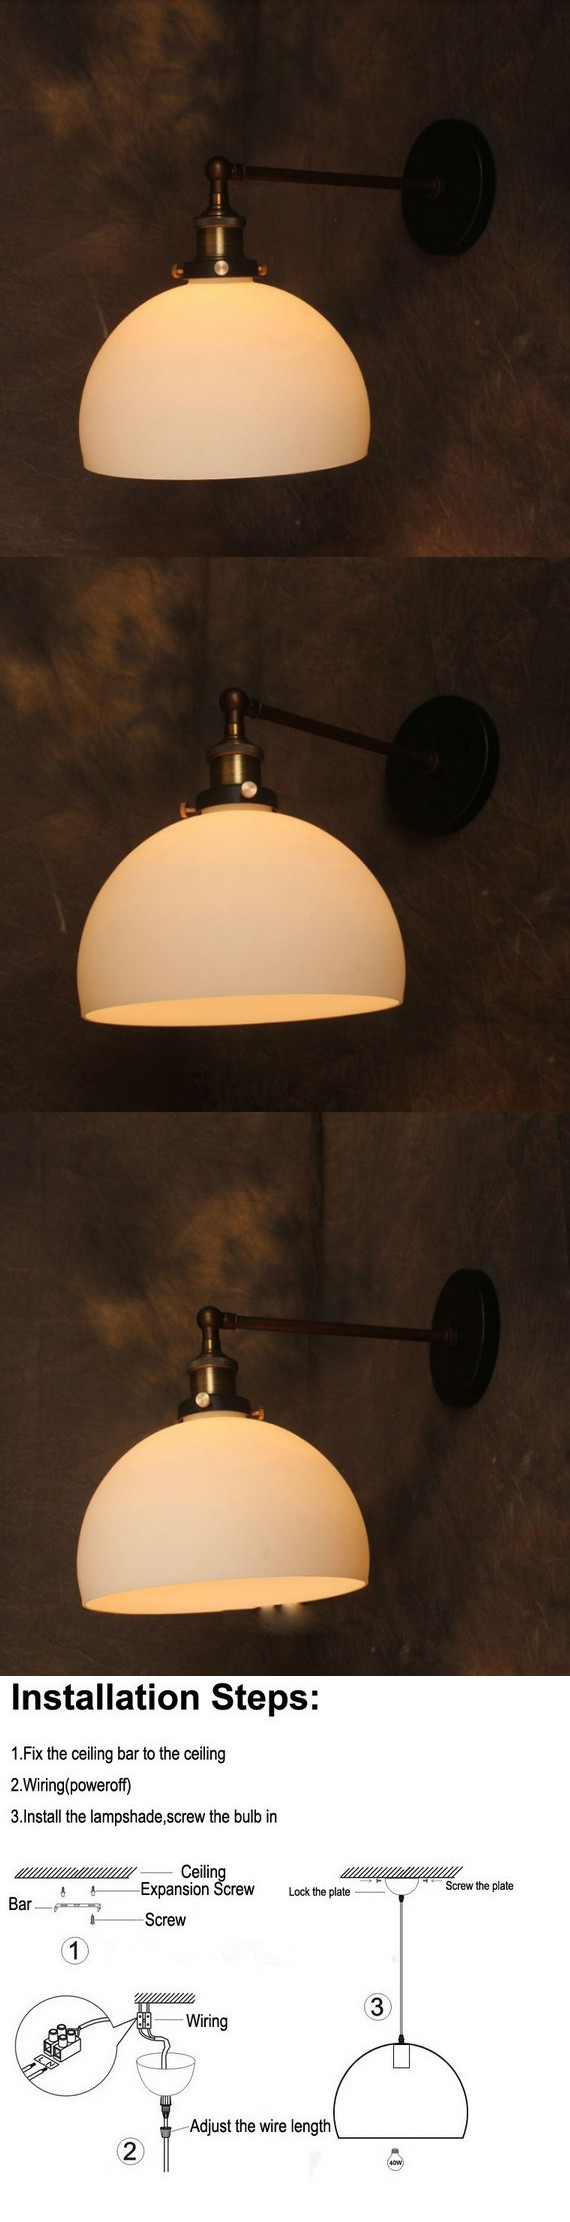 New Vintage Small Wall Light Rh Loft L Lamps For Home Decoration Wiring Lights In Attic Restaurant Dinning Room E27